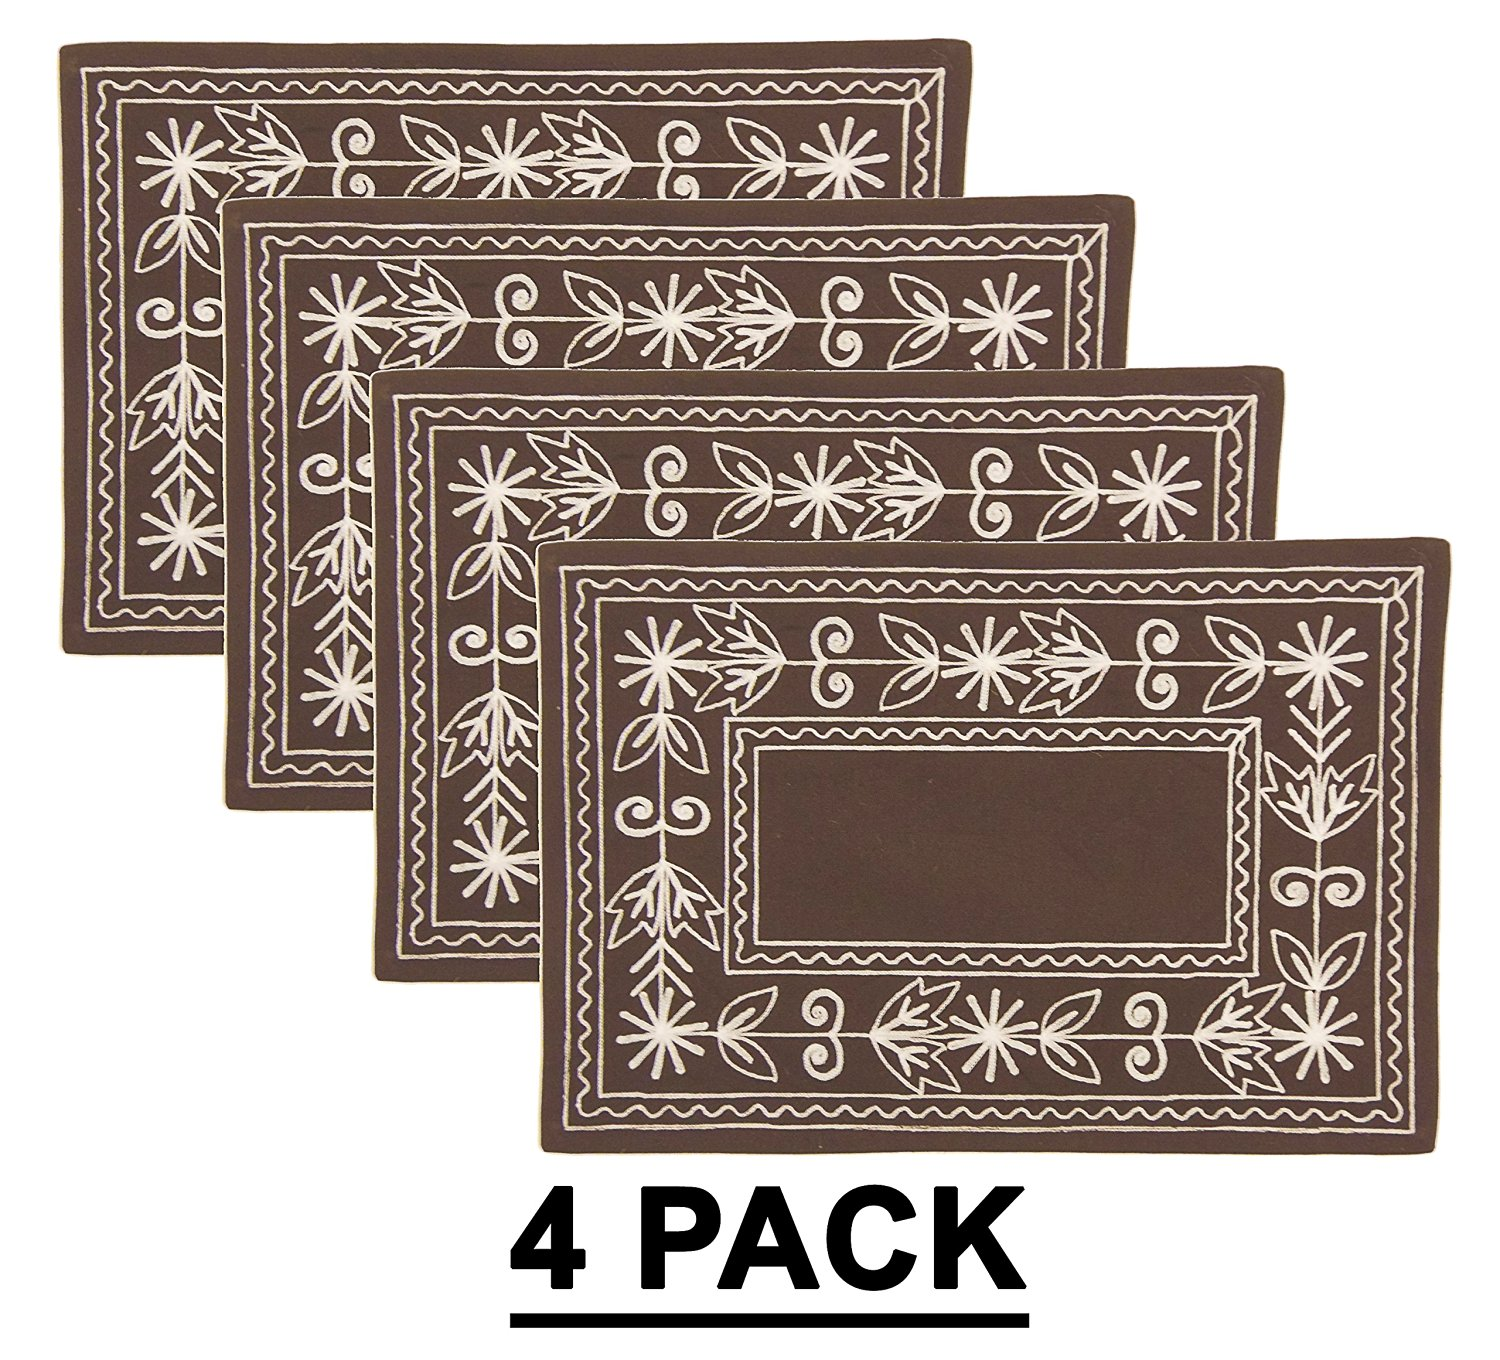 Cotton Craft - Cotton Crewel Embroidery Placemat (Set of 4) - Chocolate - 13x19 Inches - Heavy Duty 100% Cotton Canvas fabric - These beautifully textured and hand crafted table linens are lovingly hand embroidered by skilled artisans - Easy Care Machine Wash